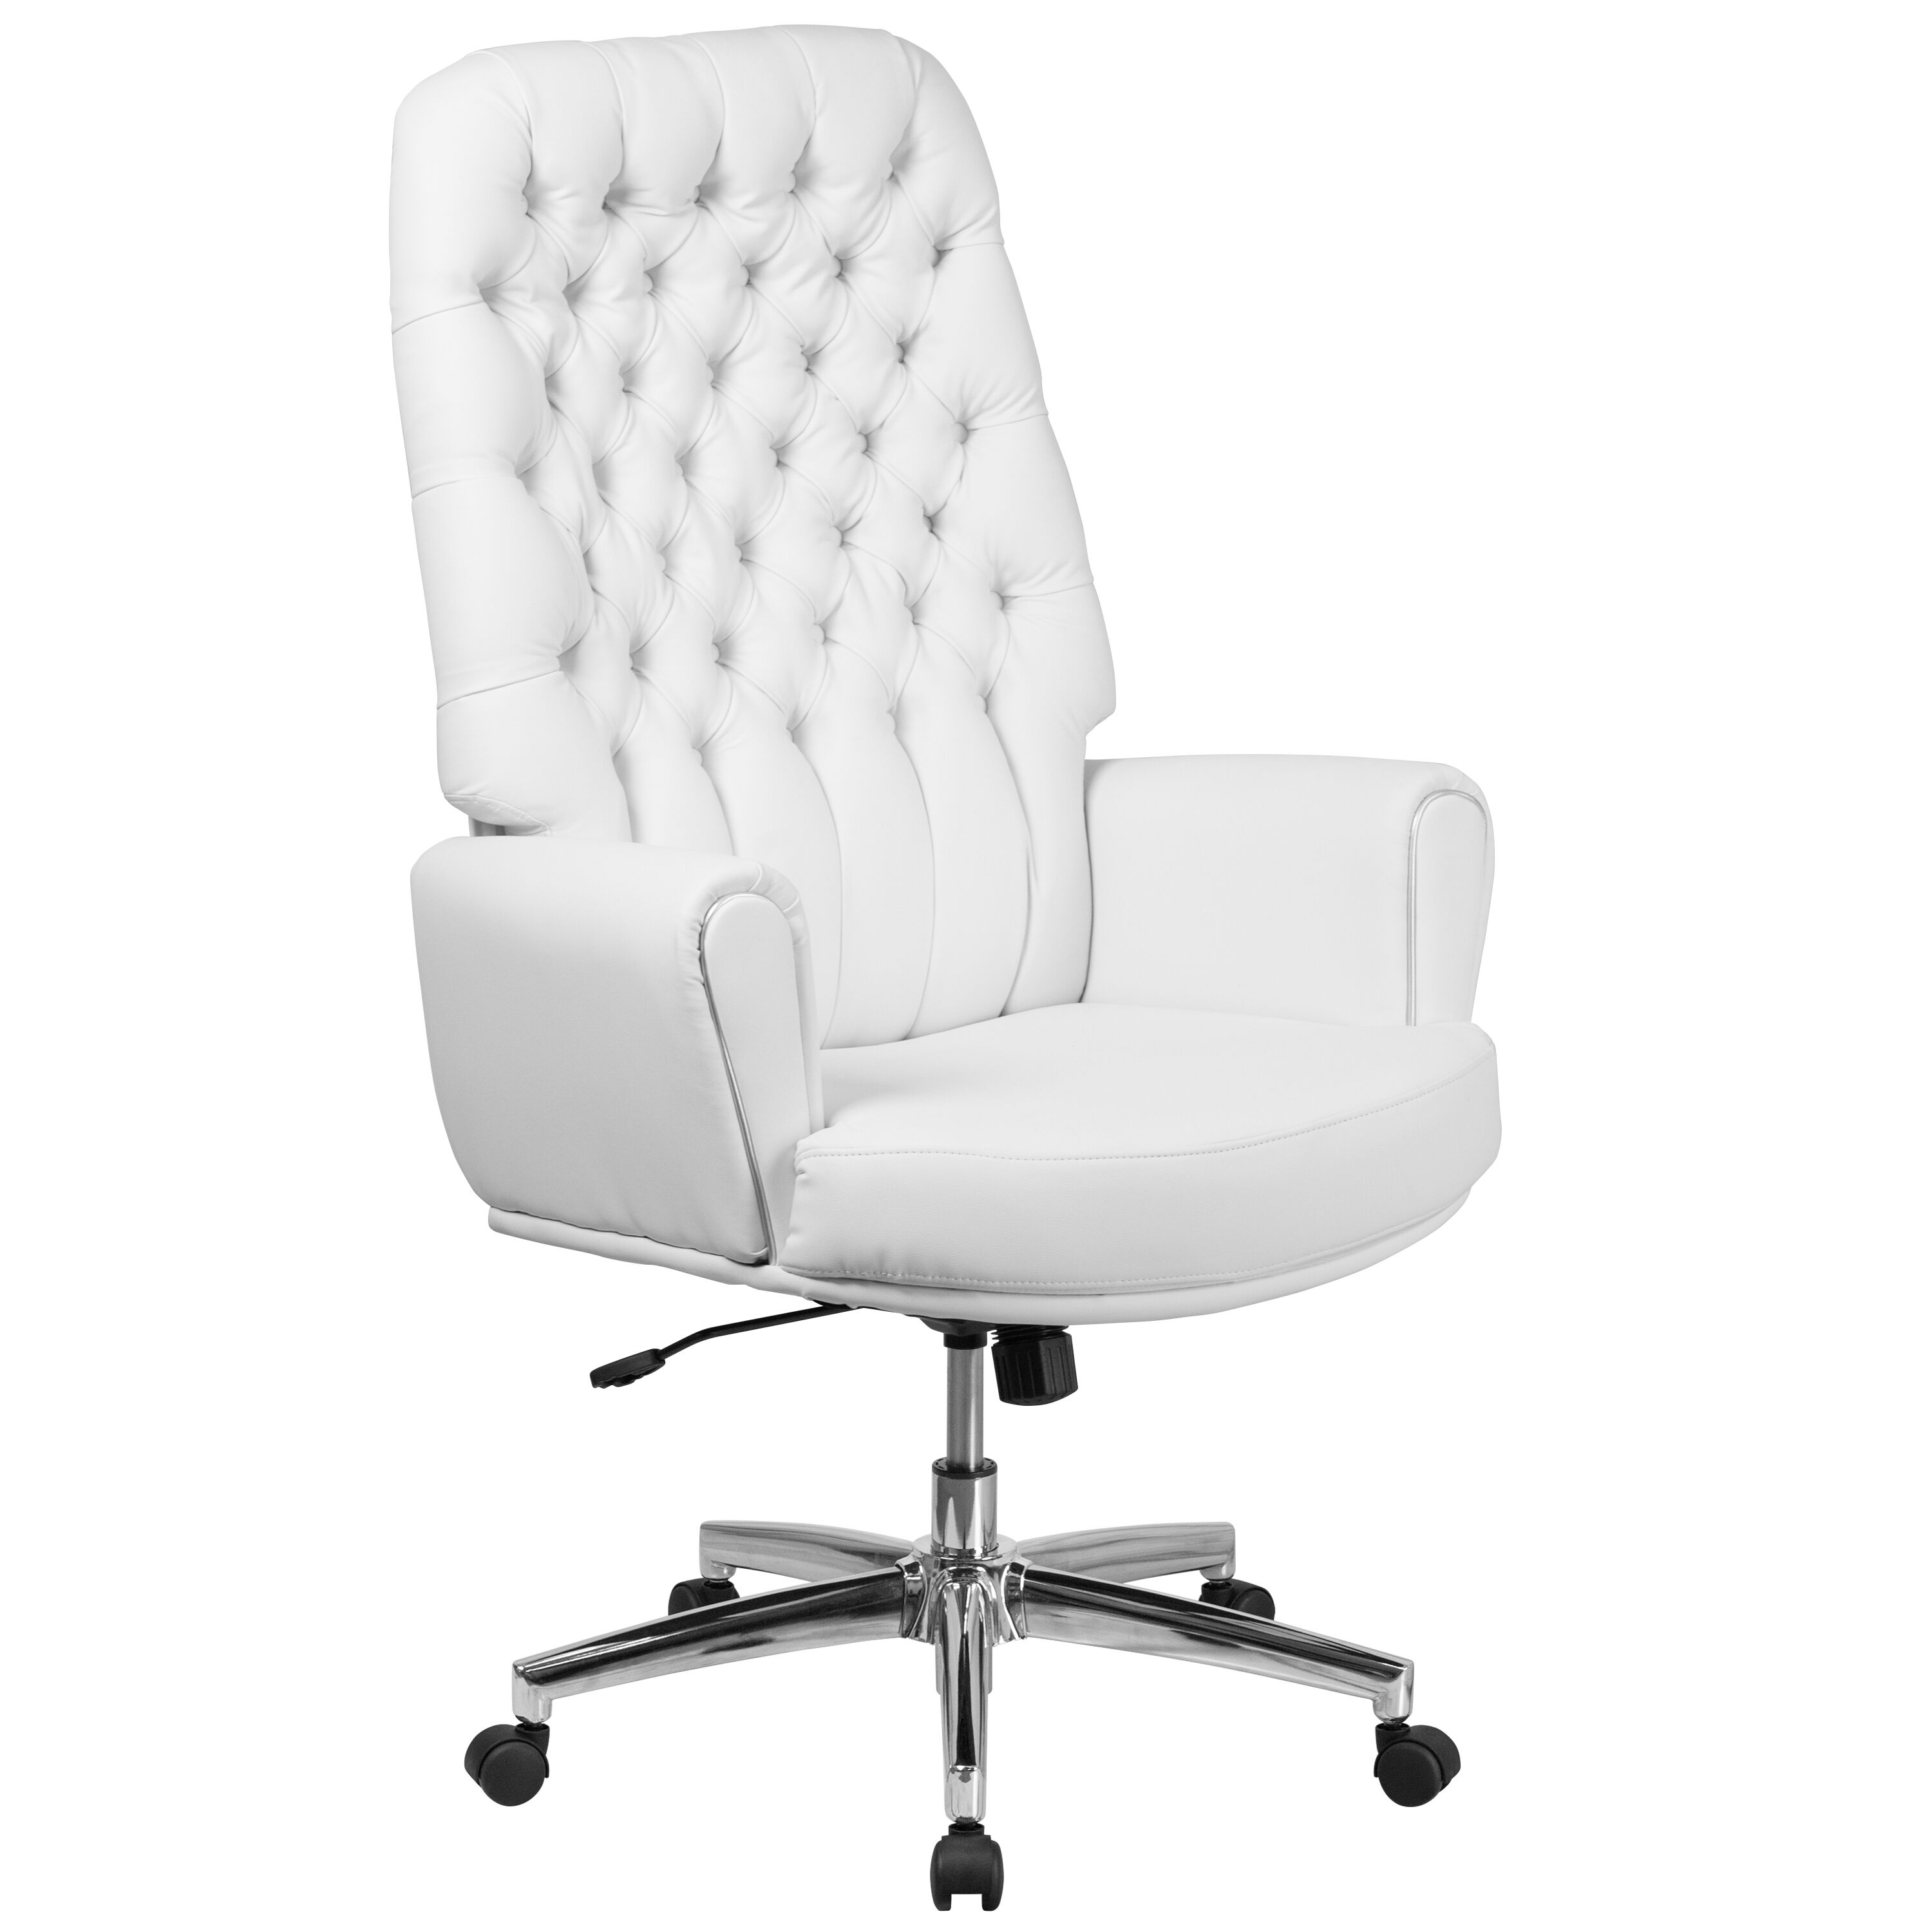 White Swivel Desk Chair High Back Traditional Tufted White Leather Executive